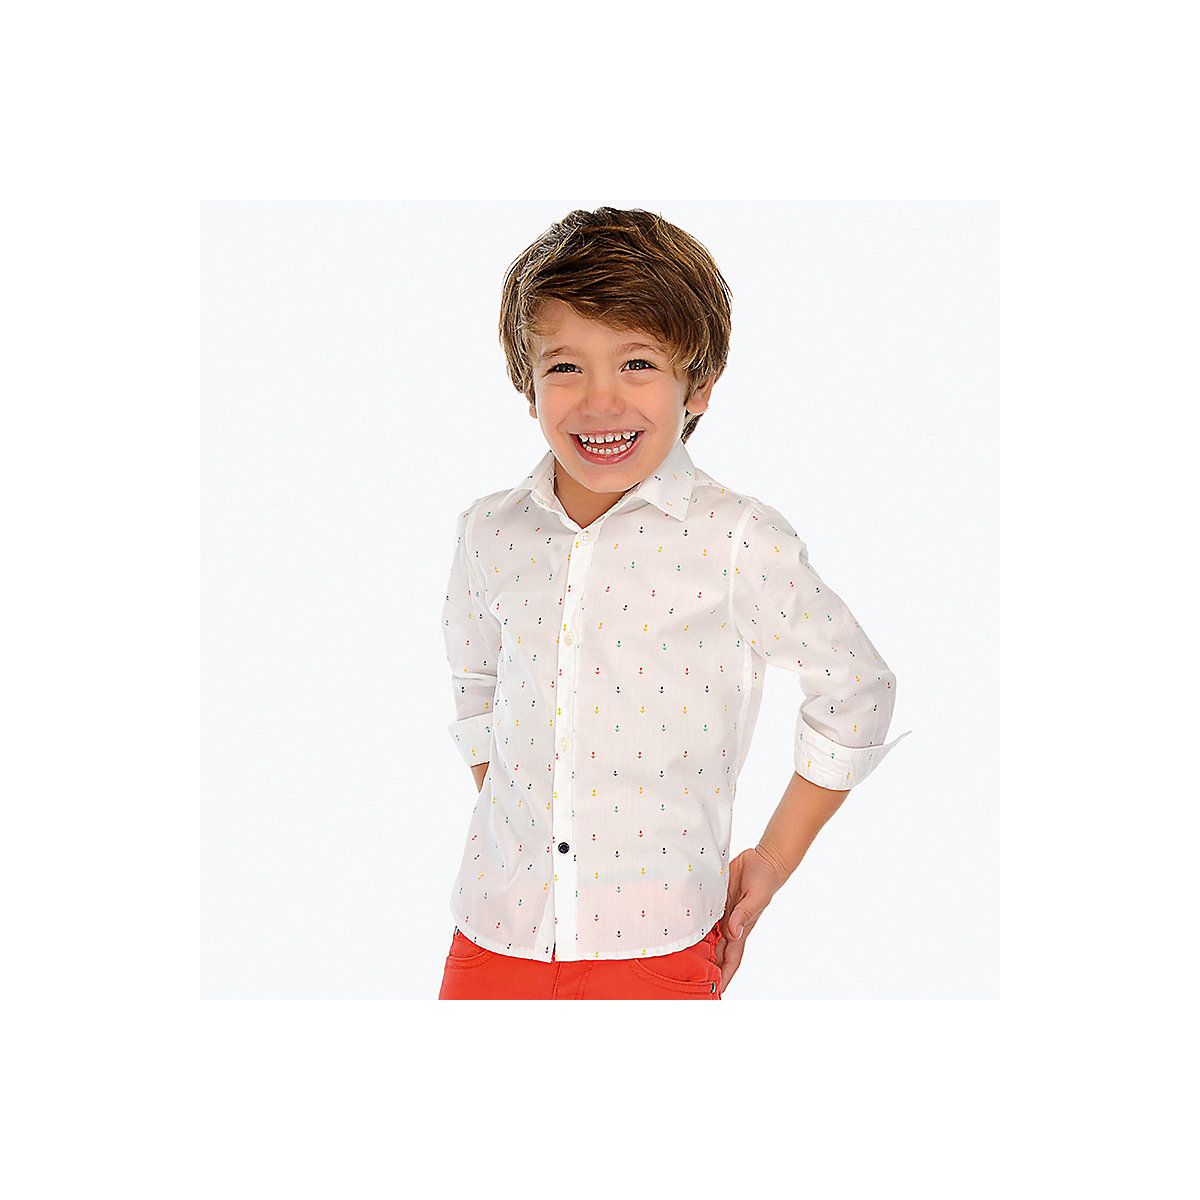 Blouses & Shirts MAYORAL 10690523 Children s Clothing shirt with long sleeve for a boy natural materials trendy round neck long sleeve love potion jacquard women s sweater